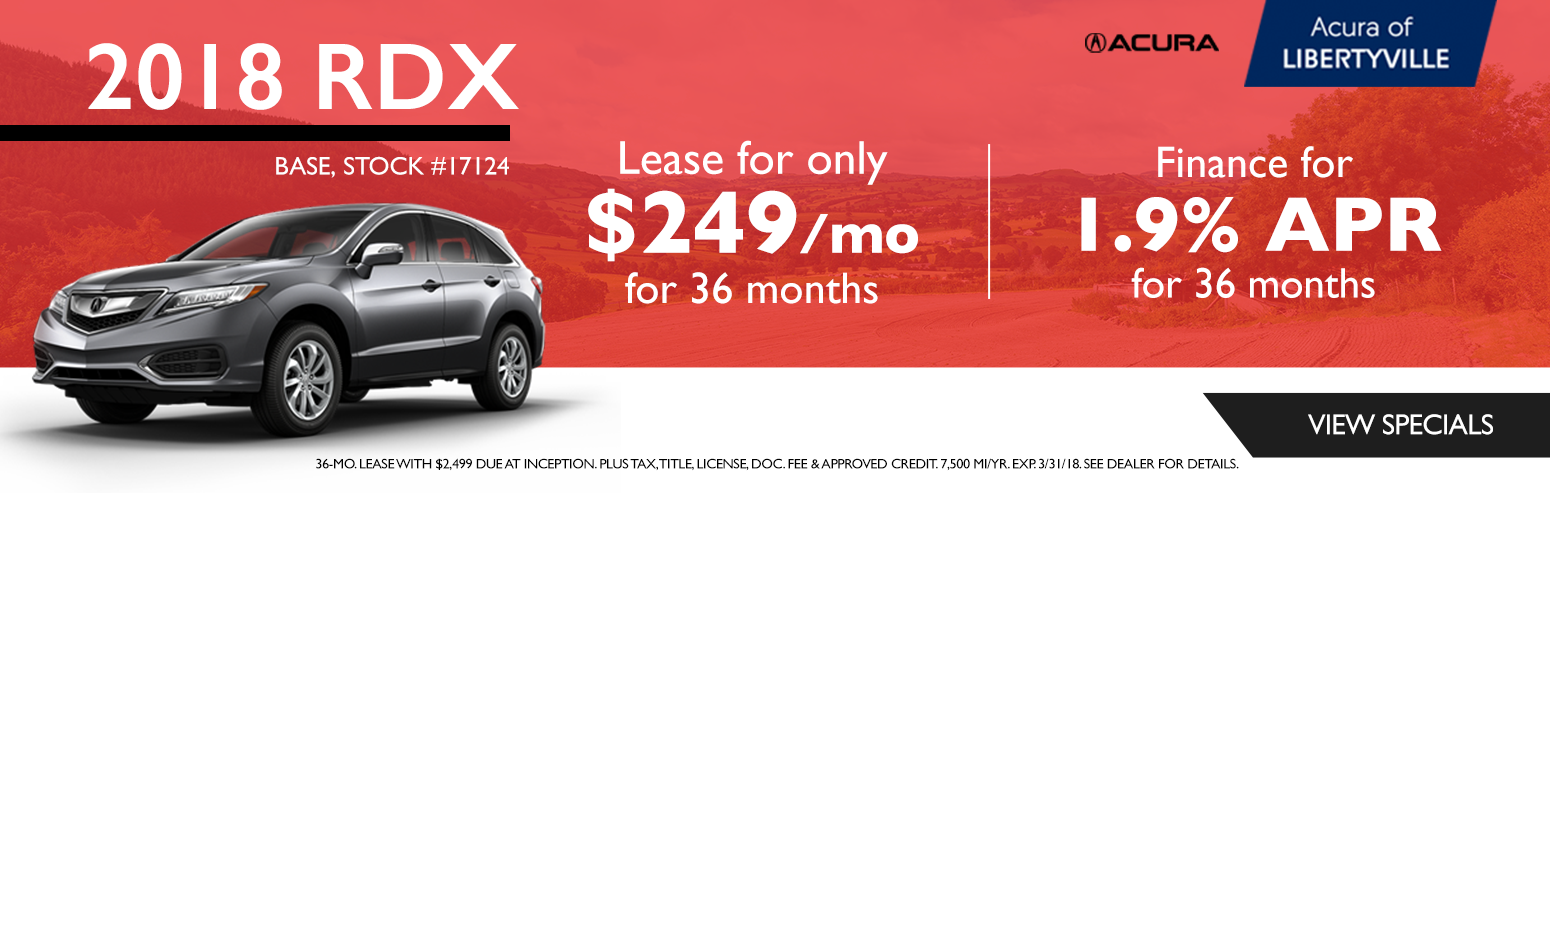 Acura Of Libertyville Libertyville IL New Used Acura Dealer - Park ave acura parts